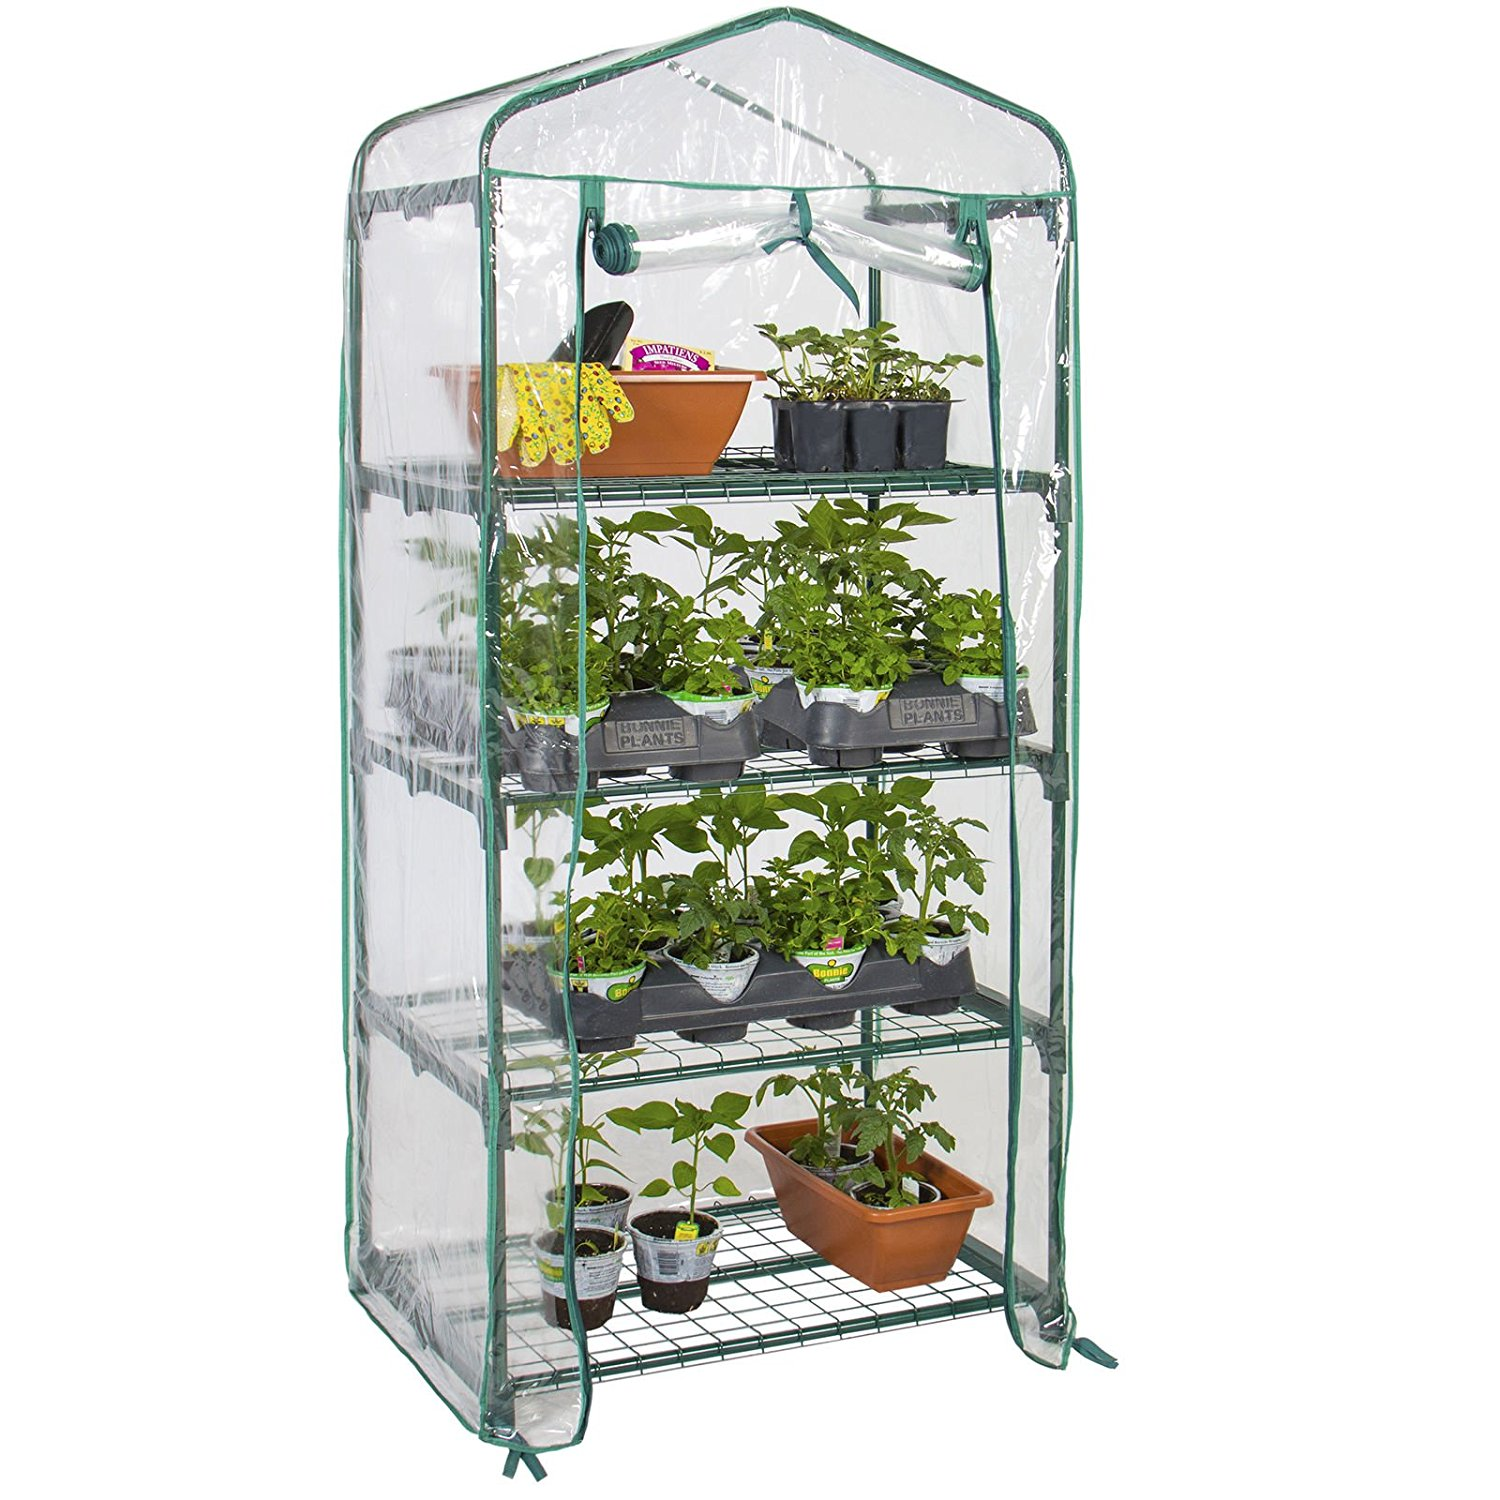 Best Direct Deals 4-Tier Mini Greenhouse w/Cover and Roll-up Zipper Door 27x19x63in - Green